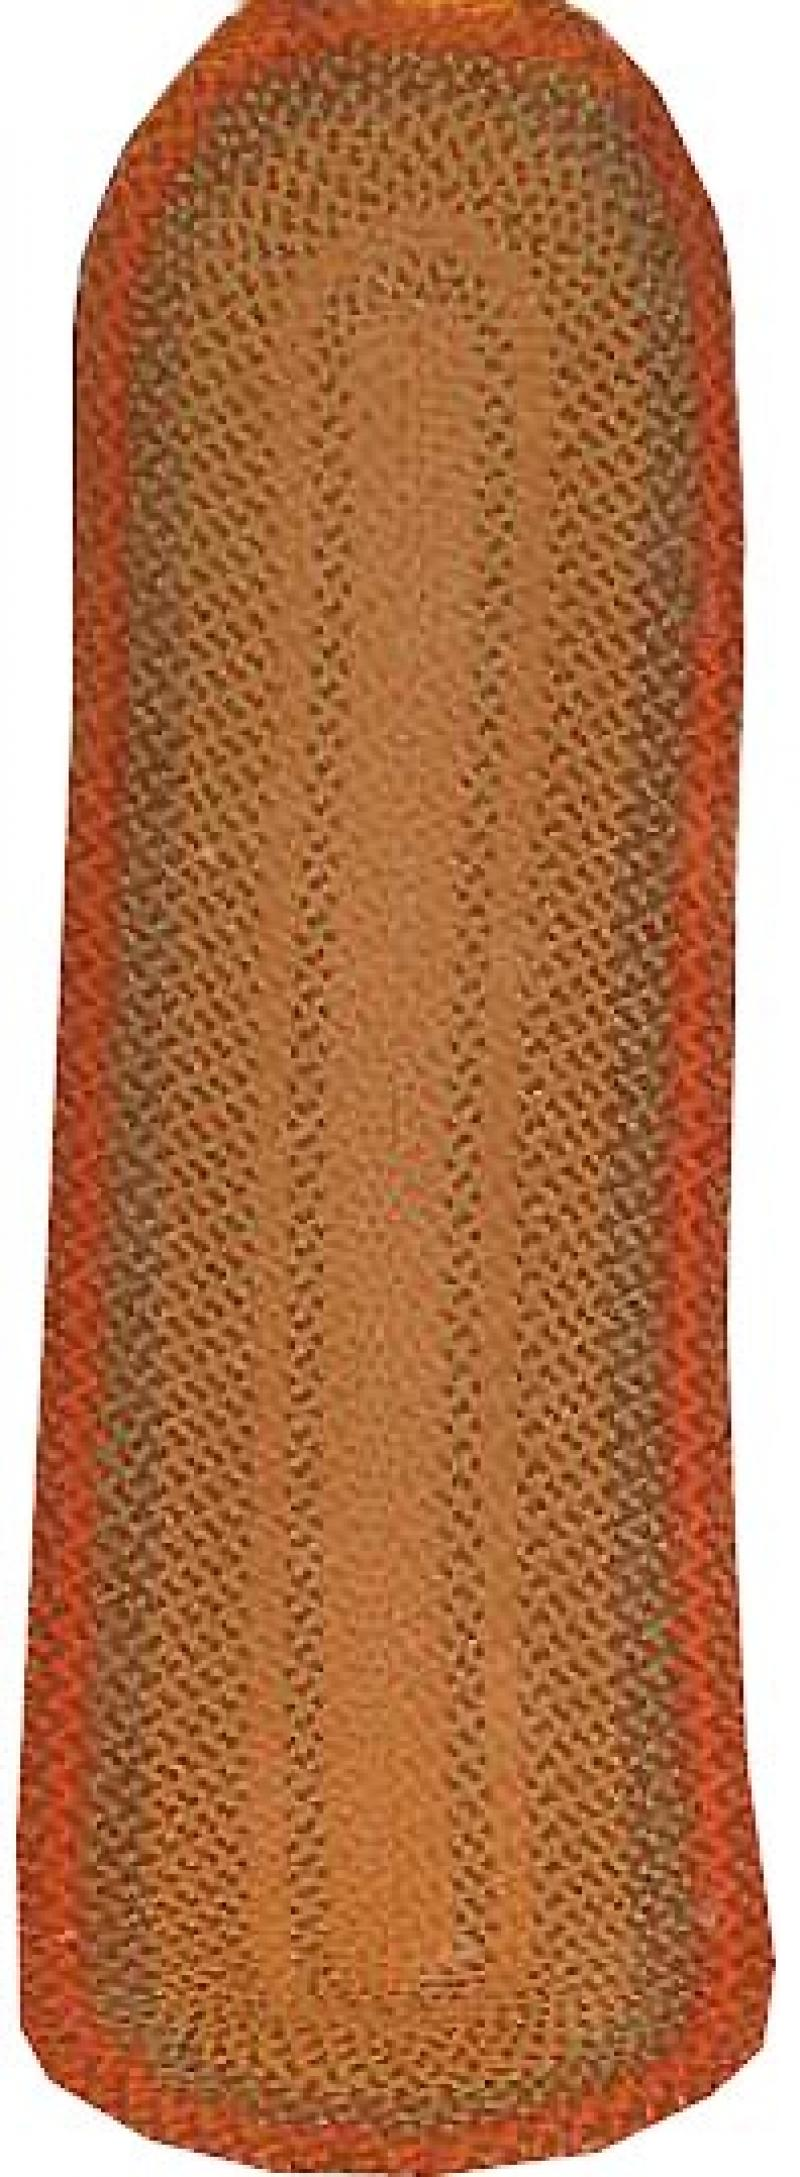 BRAIDED LONG OVAL RUG IN AUTUMN COLORS